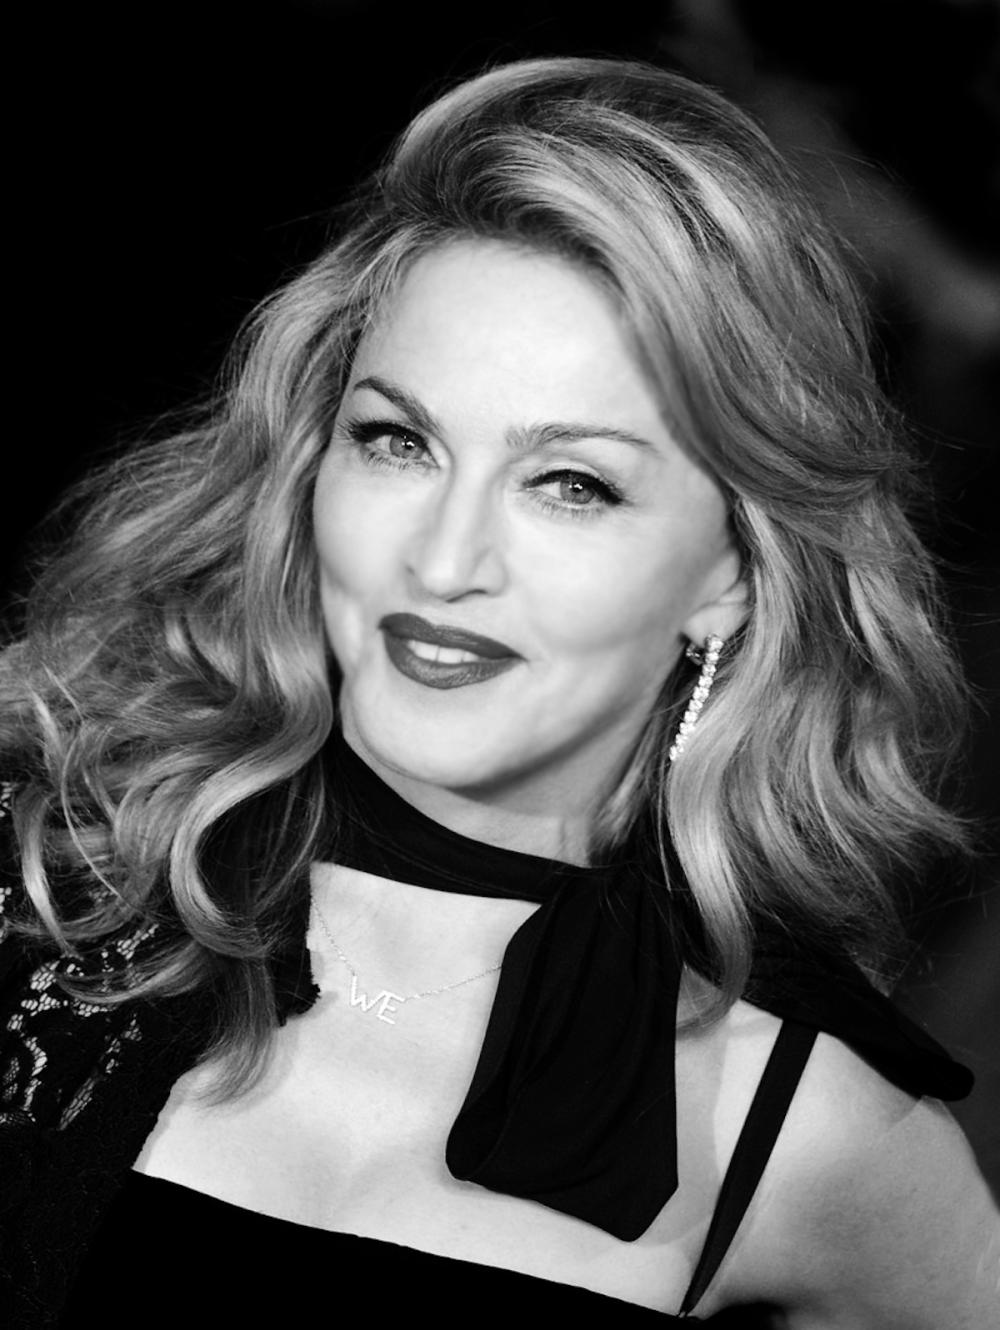 a biography of madonna louise ciccone an american singer songwriter actress and businesswoman Americans madonna singer actress madonnas businesswoman.